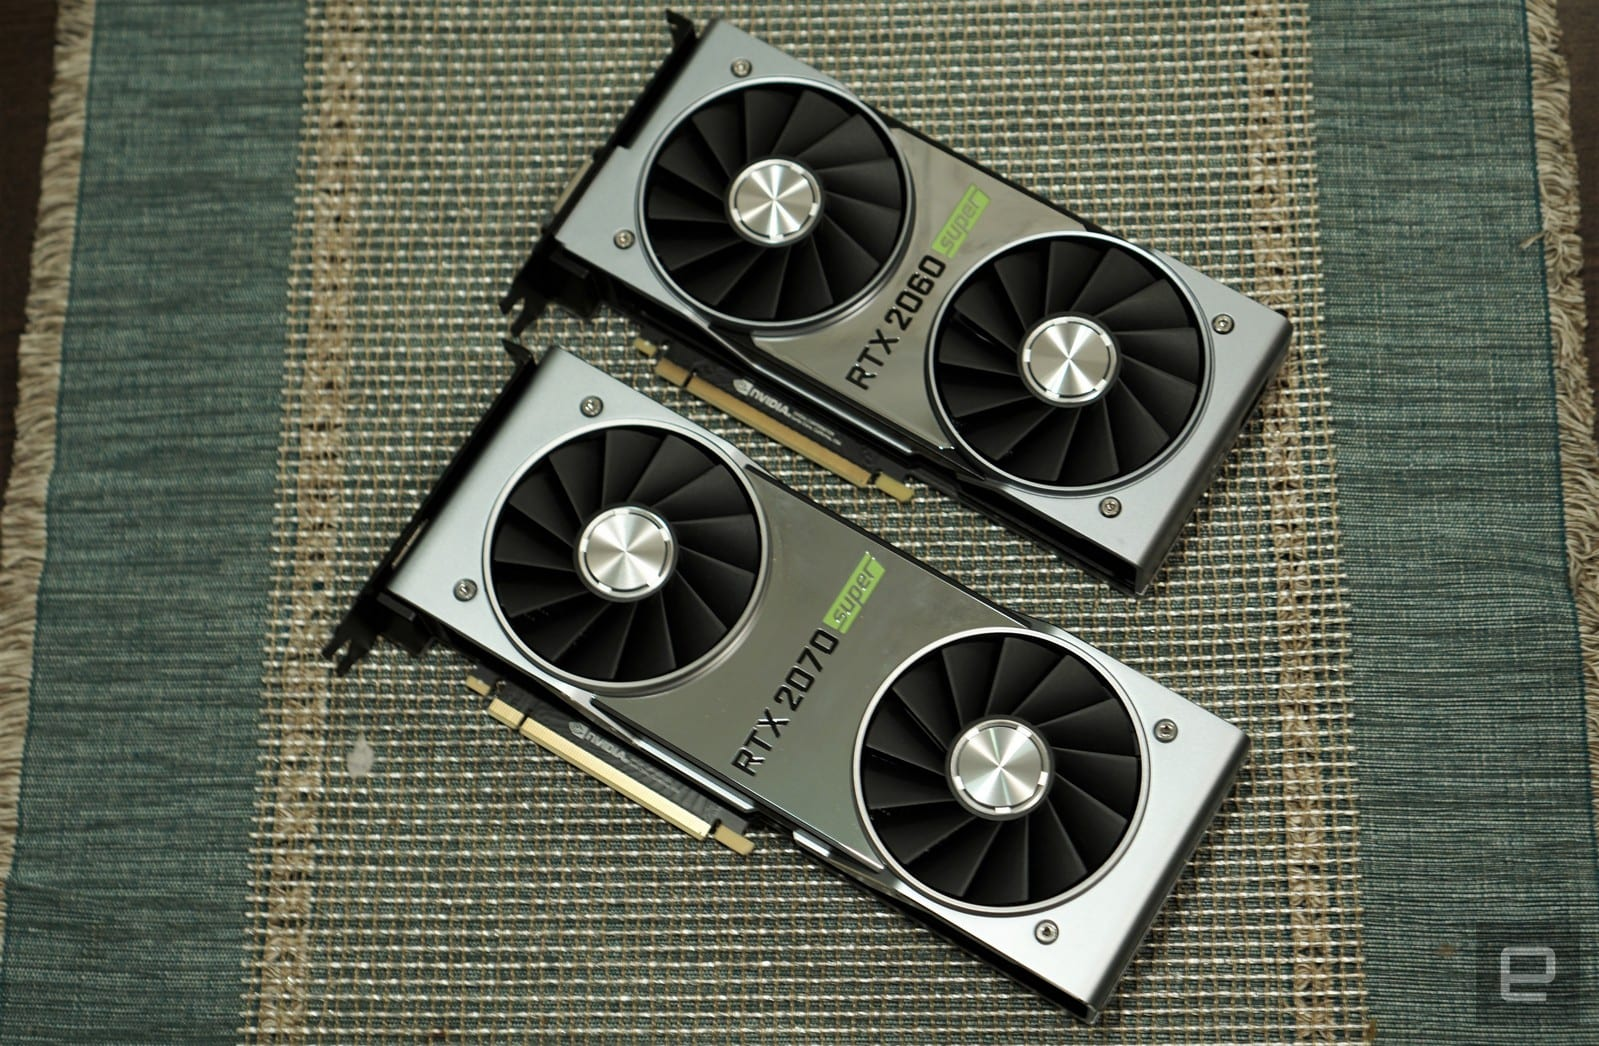 NVIDIA RTX 2060 Super and 2070 Super {focus_keyword} NVIDIA RTX 2060 Super and 2070 Super review dims crop 1599 2C1046 2C0 2C0 quality 85 format jpg resize 1600 2C1046 image uri https 3A 2F 2Fs